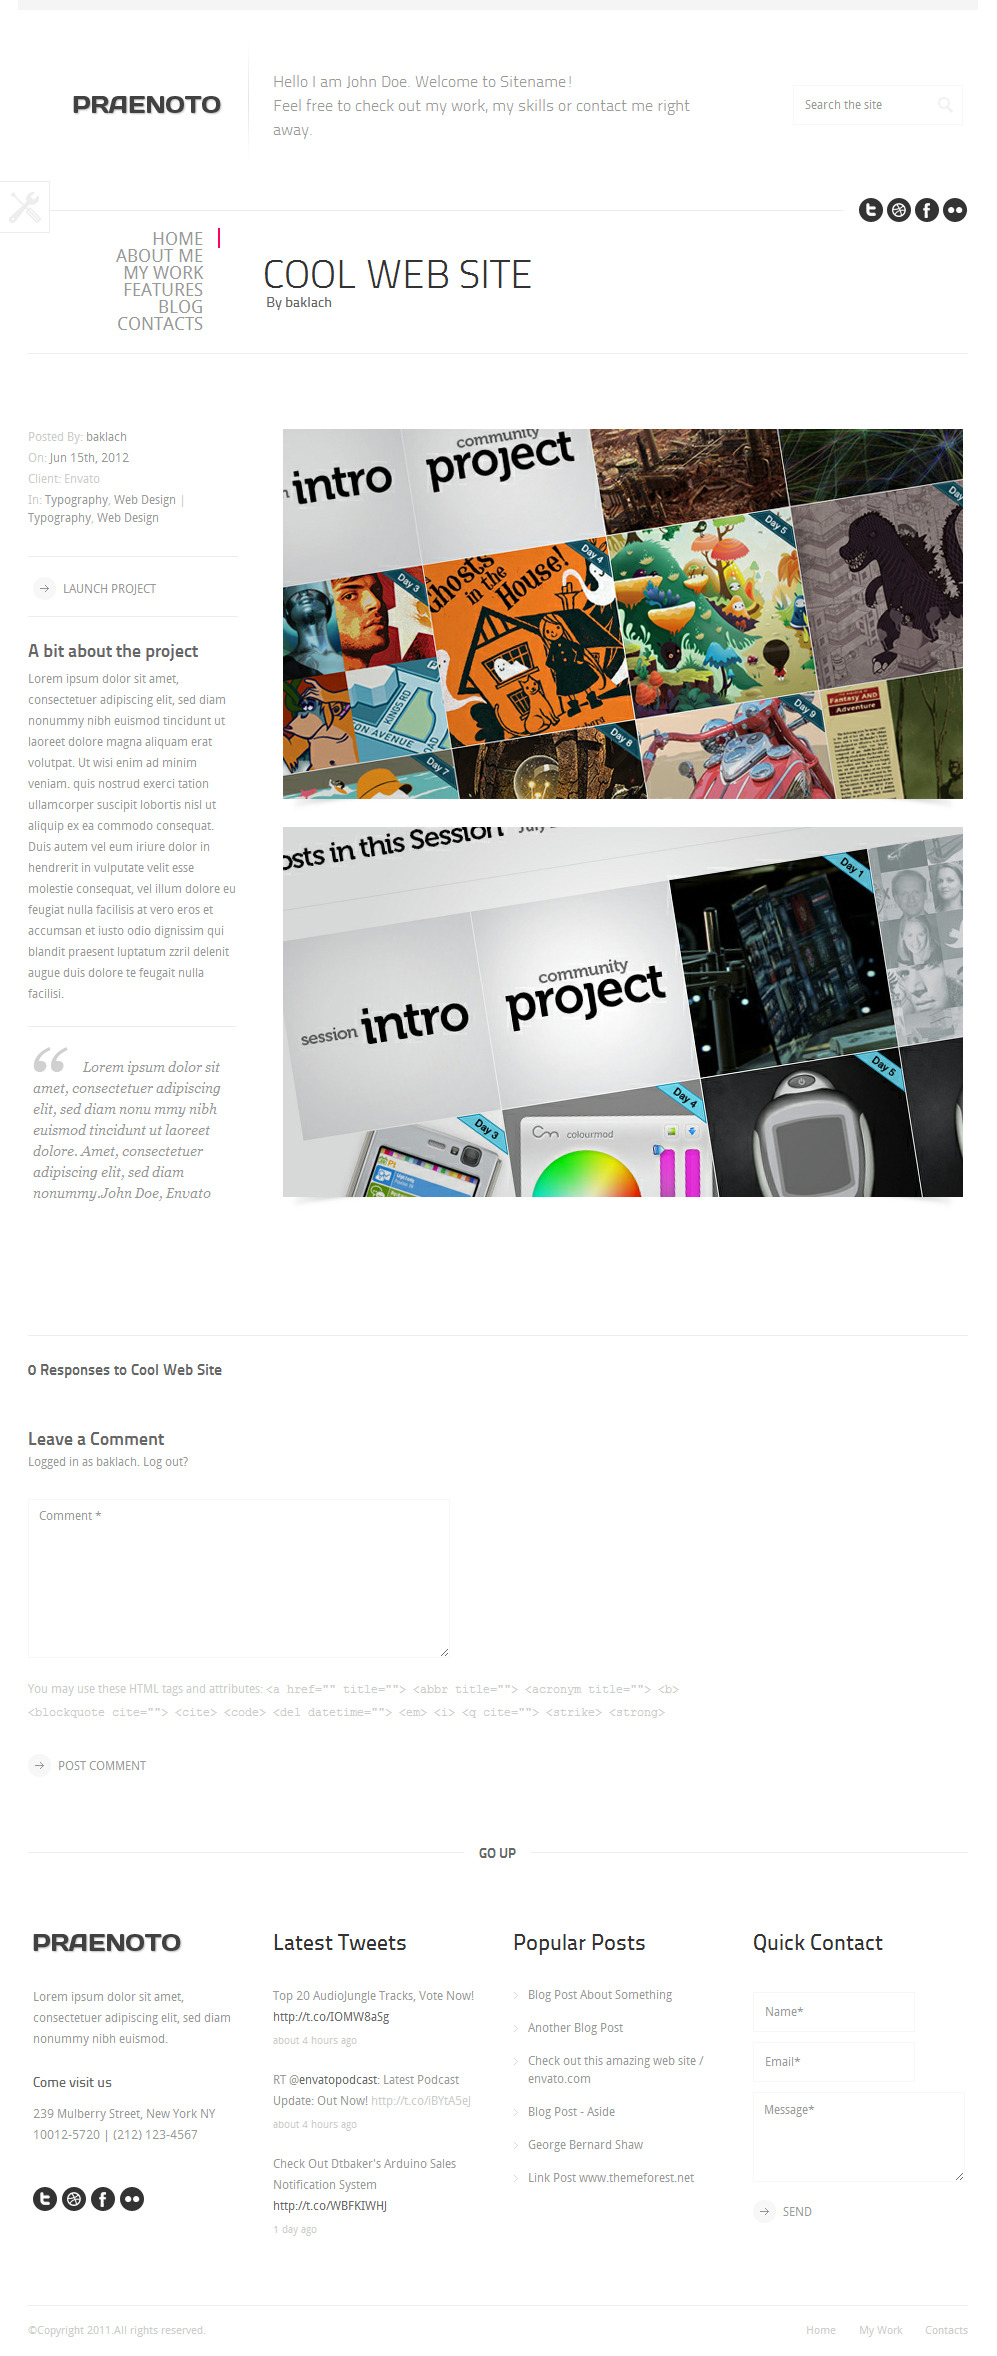 Praenoto - Clean & Minimalist WordPress Theme - Screenshot 6. Portfolio item page.